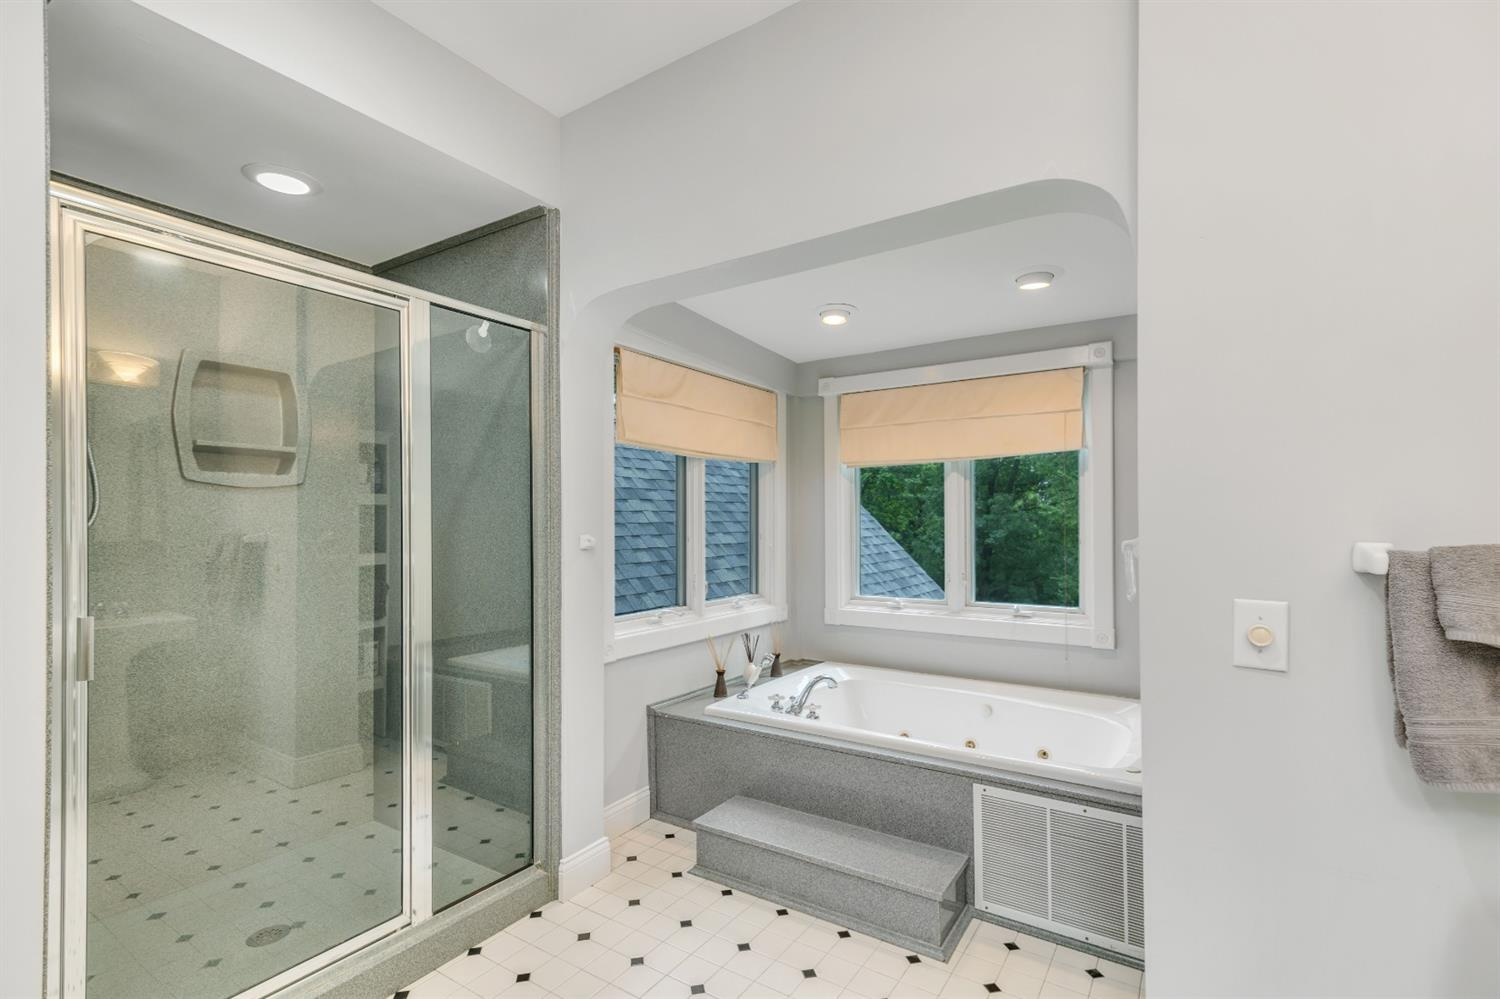 Primary bath with jetted tub and large walk-in shower.